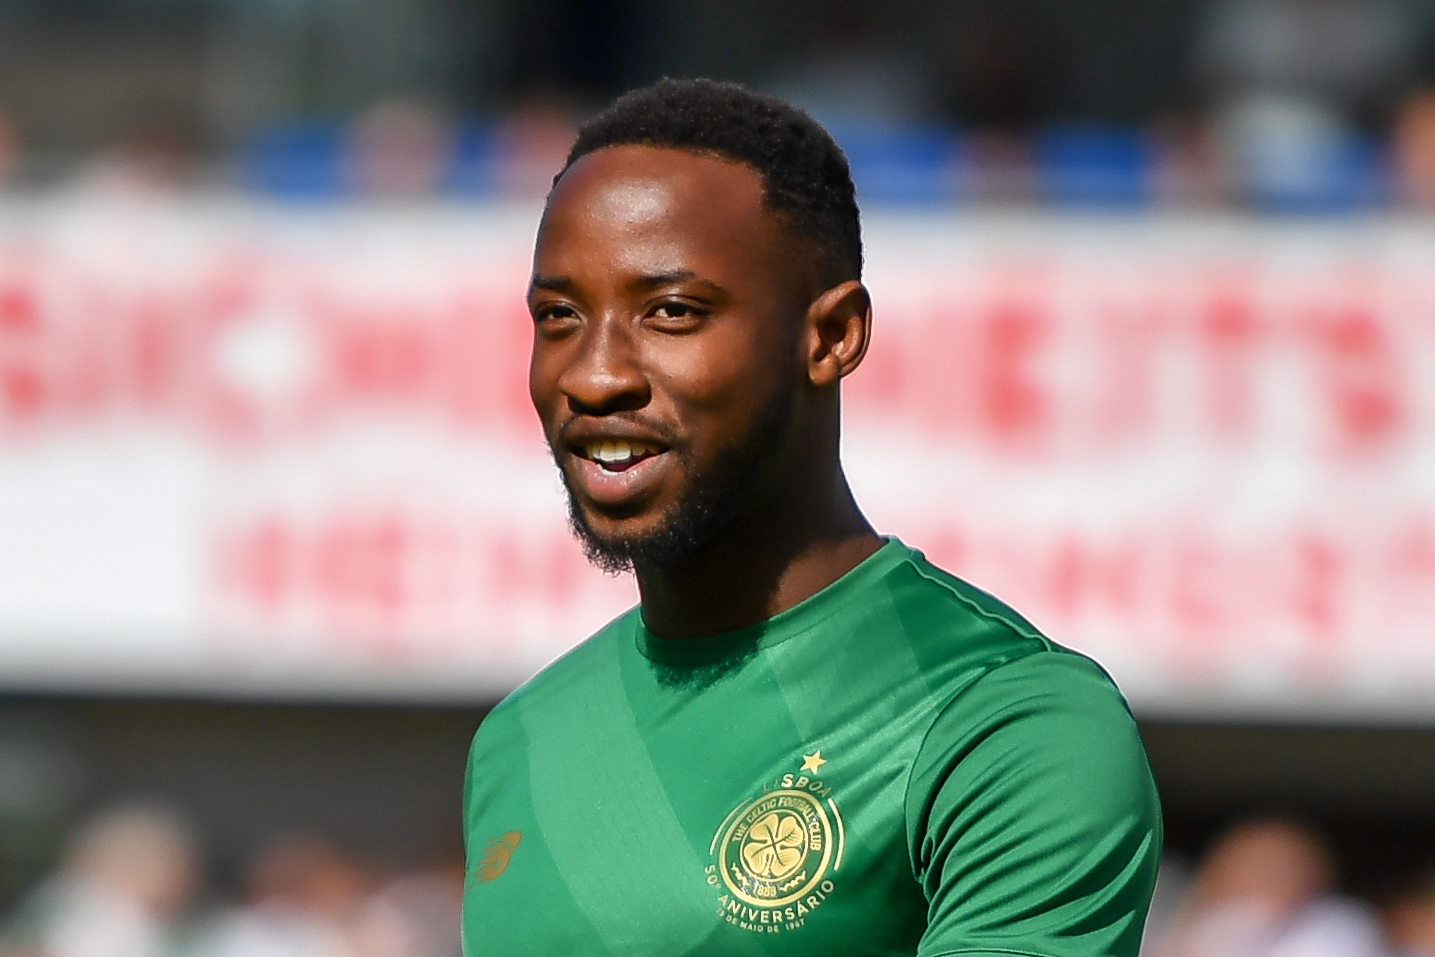 Moussa Dembélé French footballer